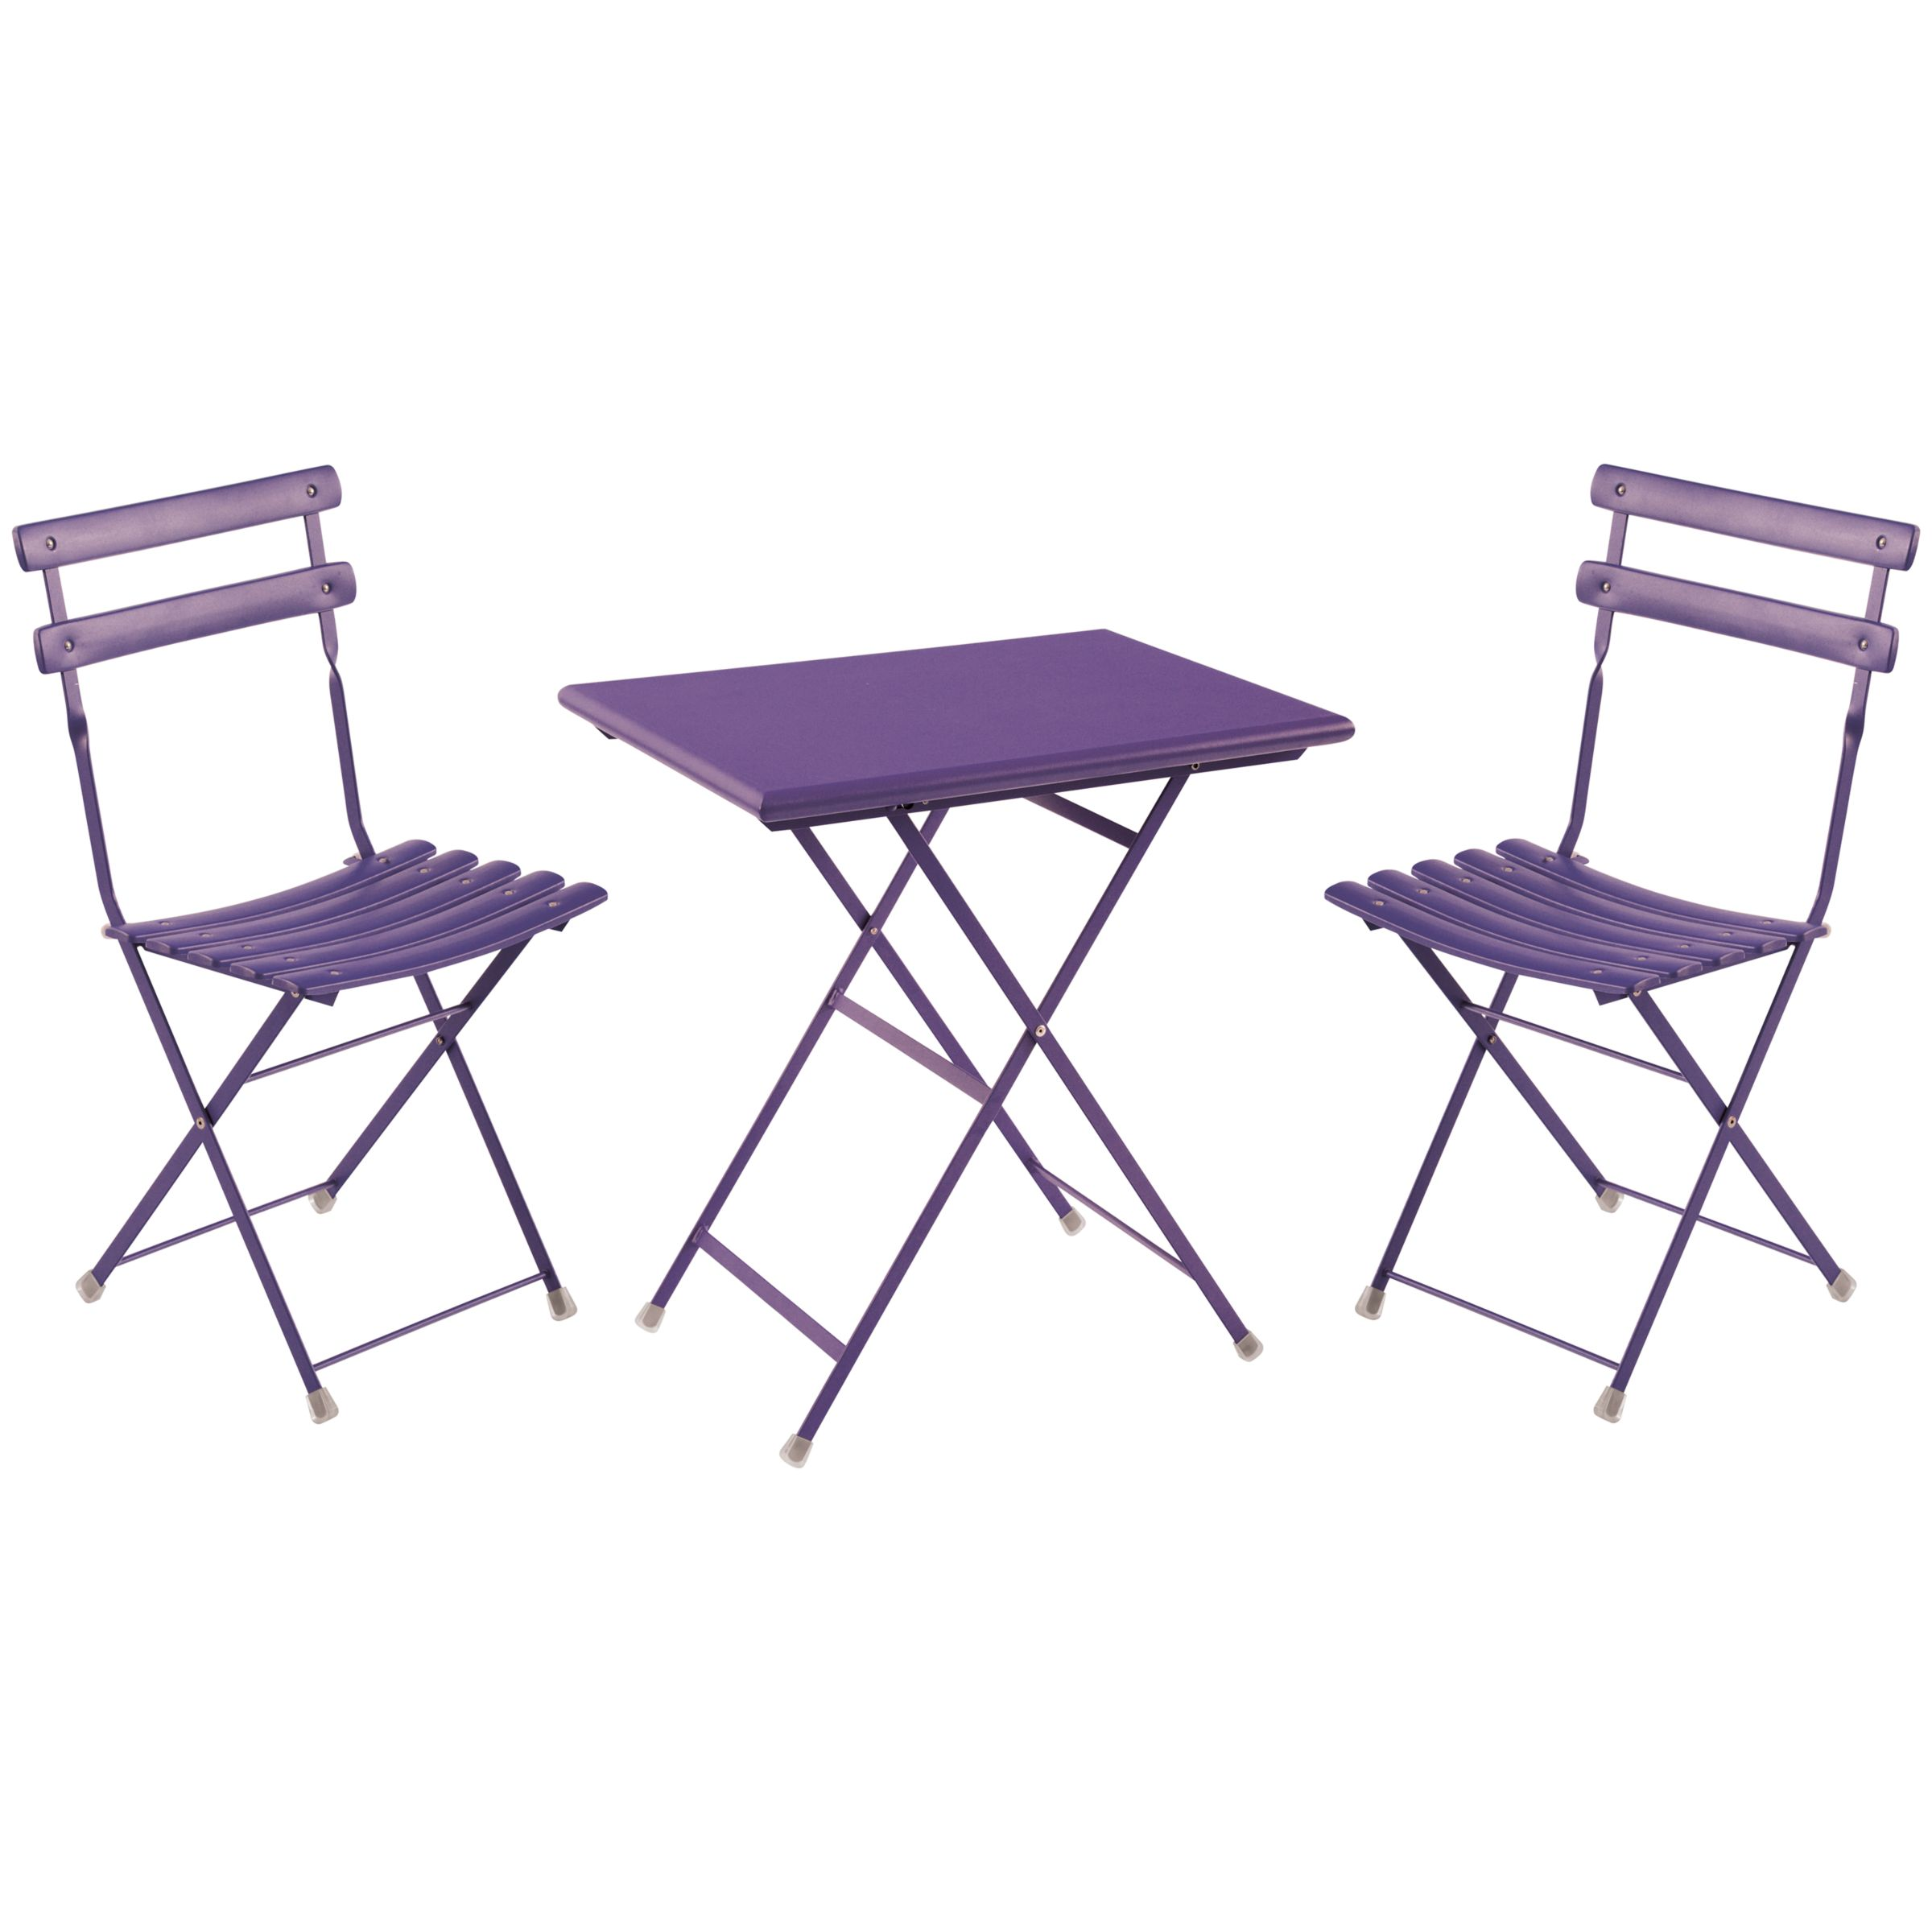 EMU Arc en Ciel 2 Seater Outdoor Bistro Set, Lilac